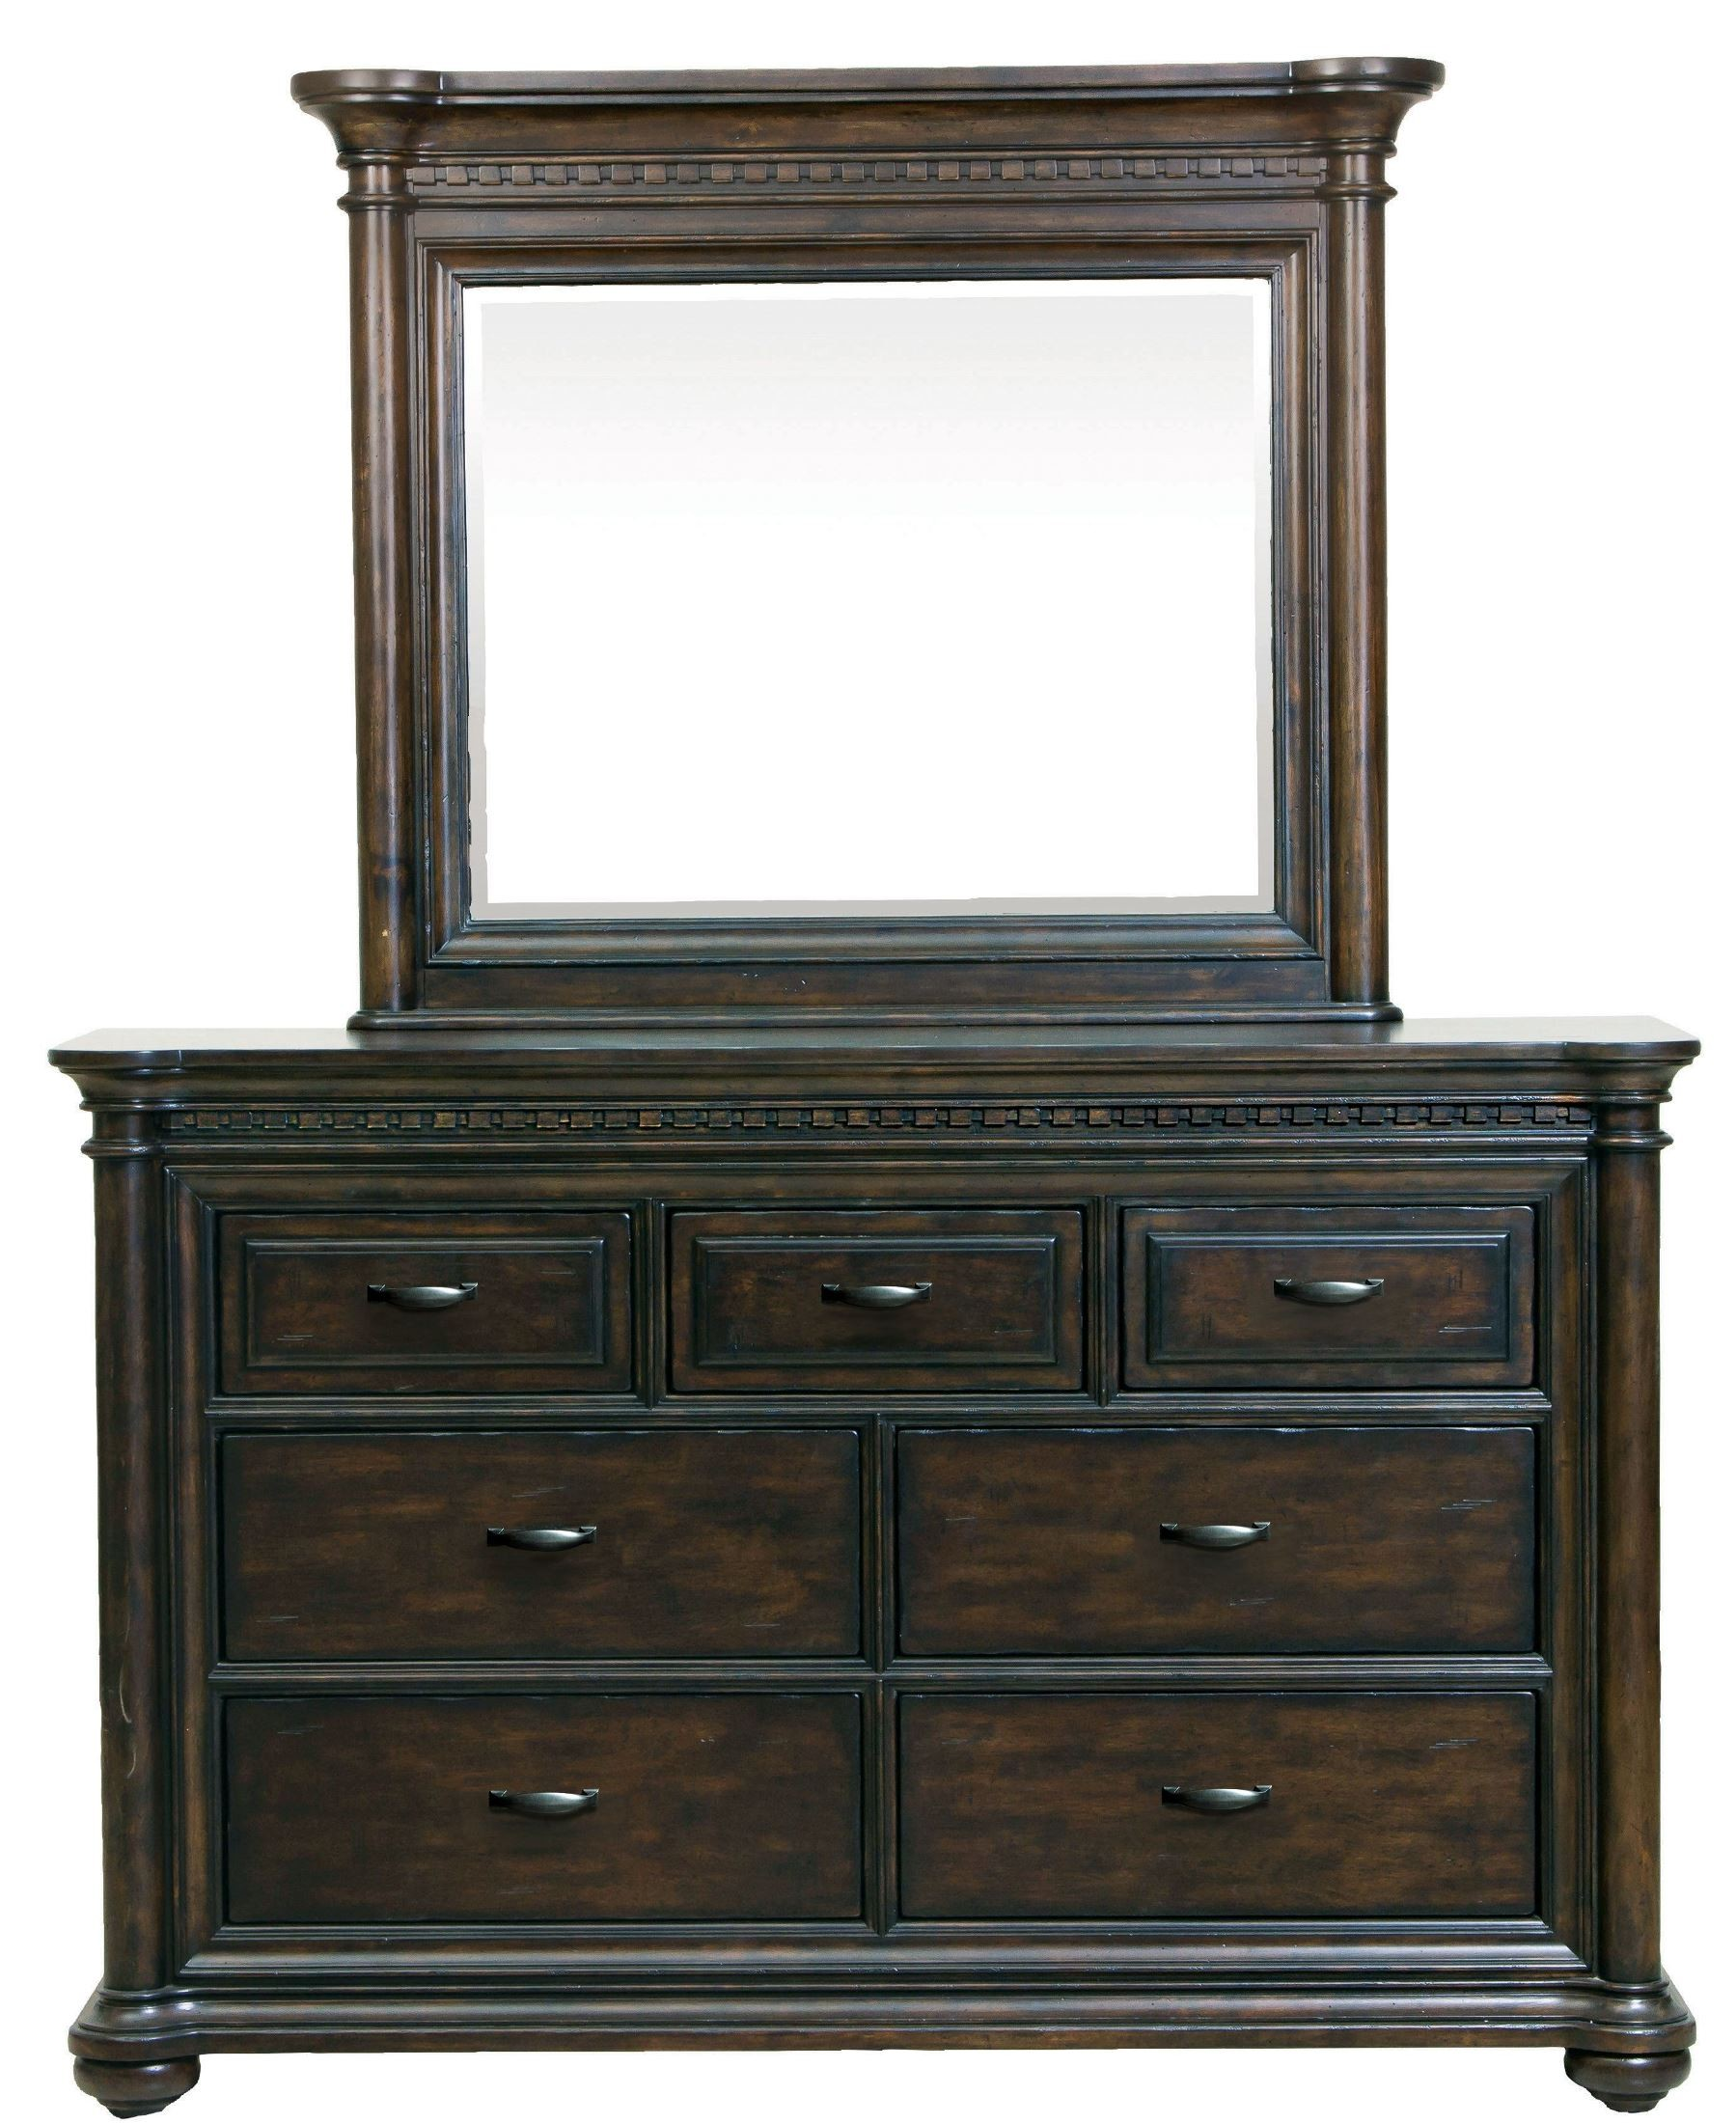 Grand Manor Panel Bedroom Set from Samuel Lawrence 8920